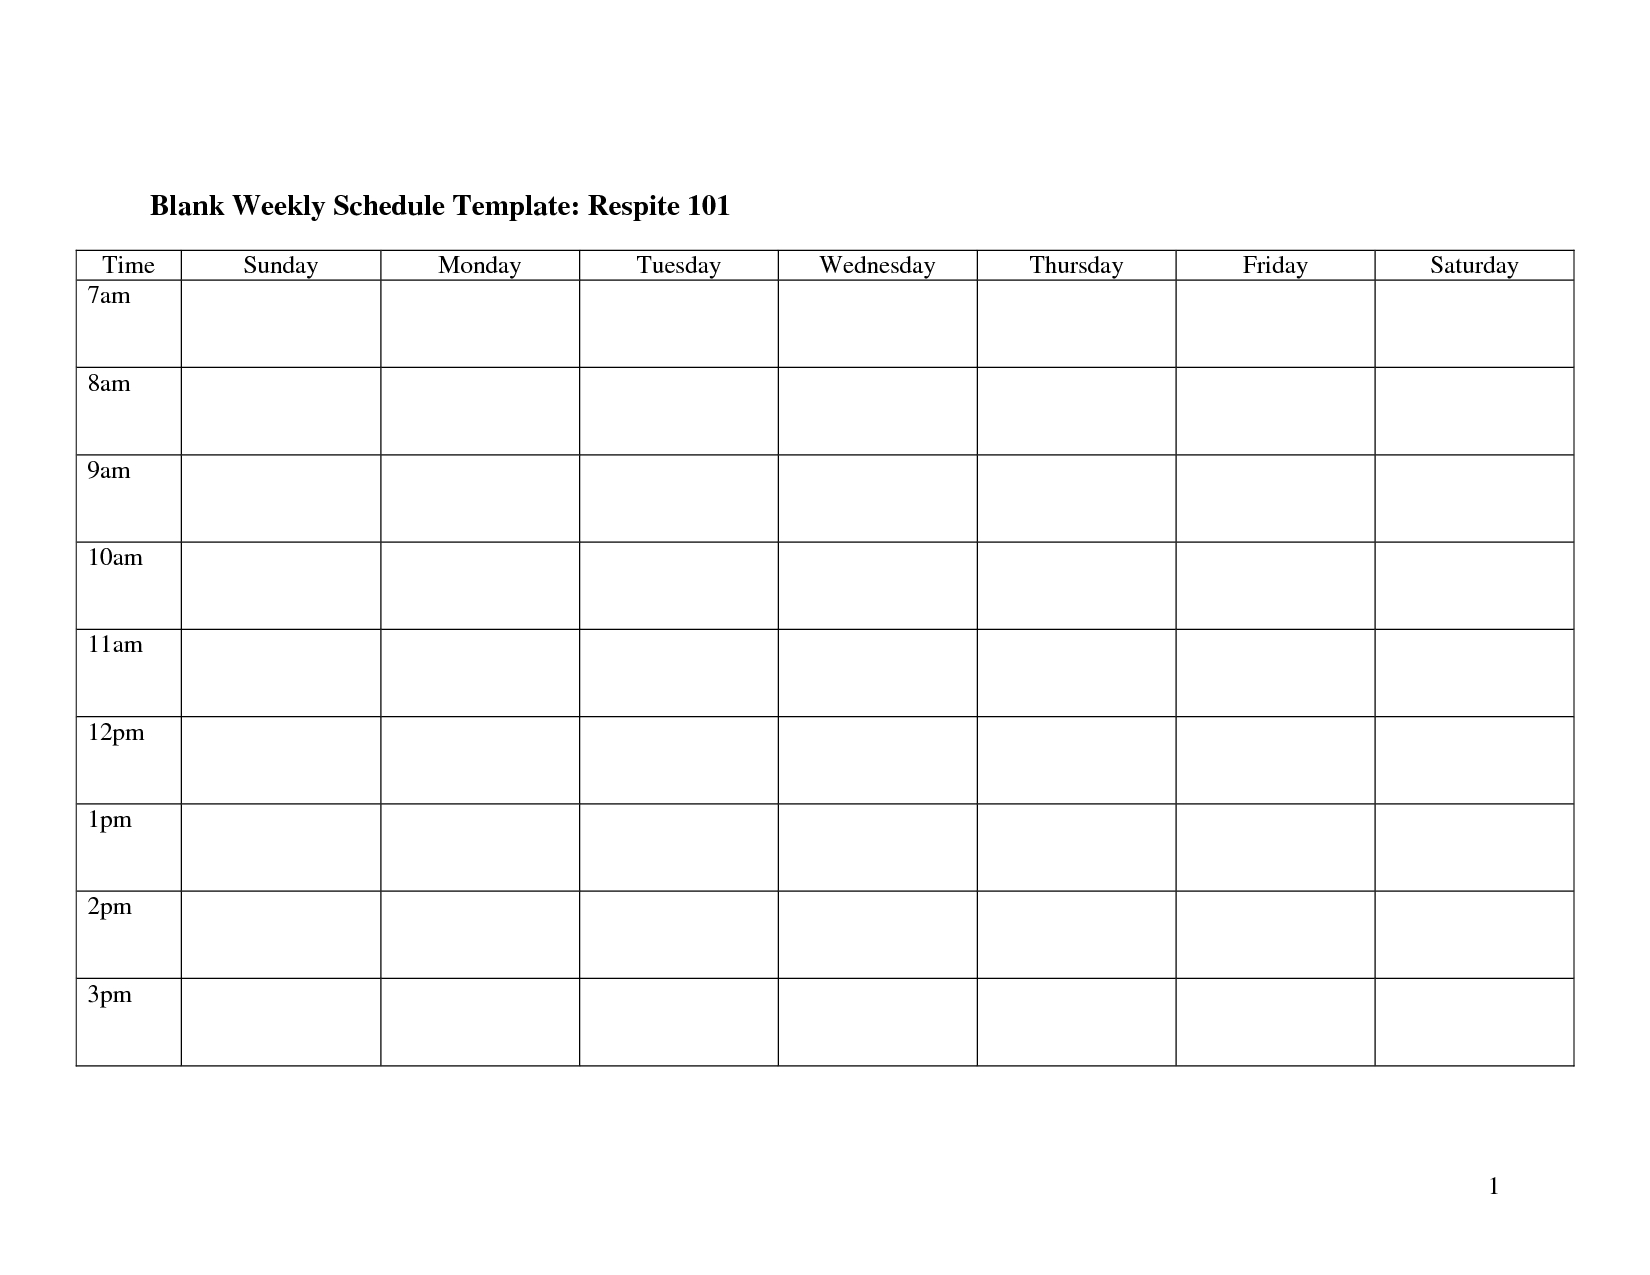 Weekly Schedule Monday Through Friday | Template Calendar Printable within Weekly Schedule Monday Through Friday